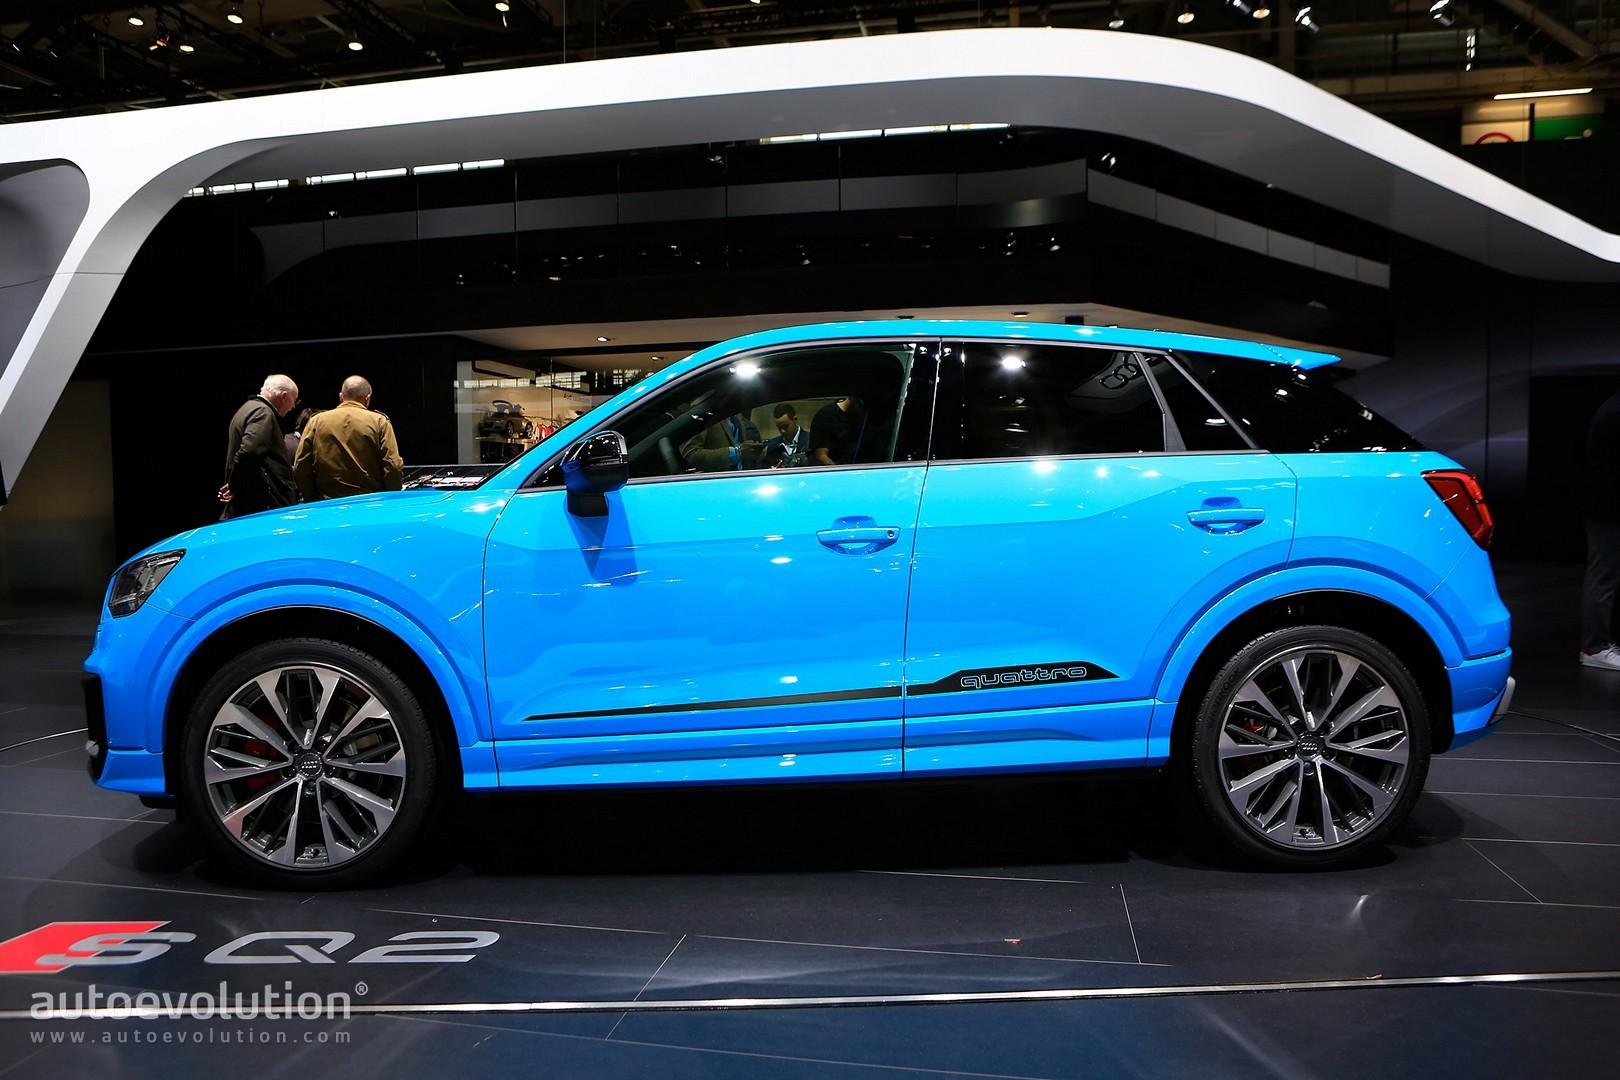 audi sq2 baby performance suv in baby blue debuts in full autoevolution. Black Bedroom Furniture Sets. Home Design Ideas